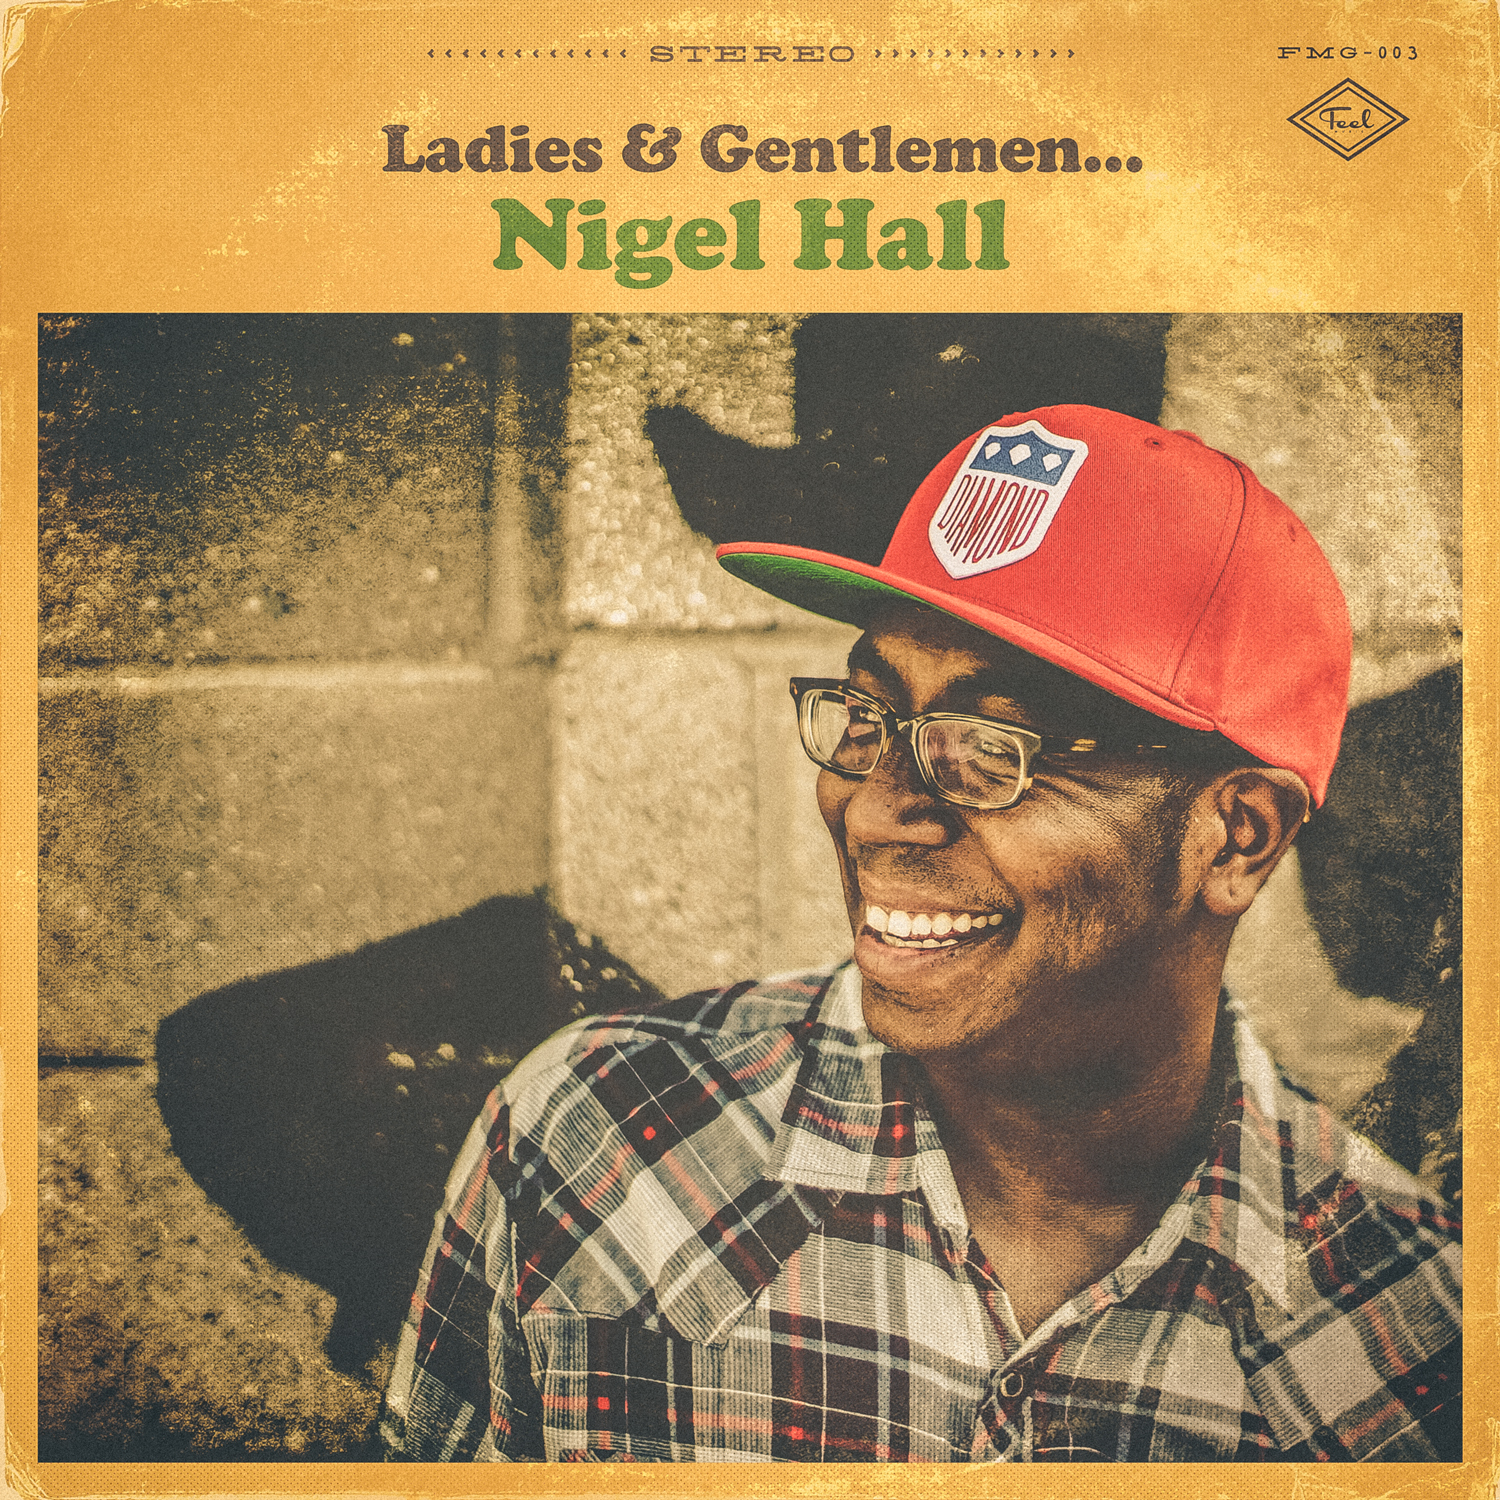 Nigel_Hall-Ladies_and_Gentlemen-1500x1500.jpg